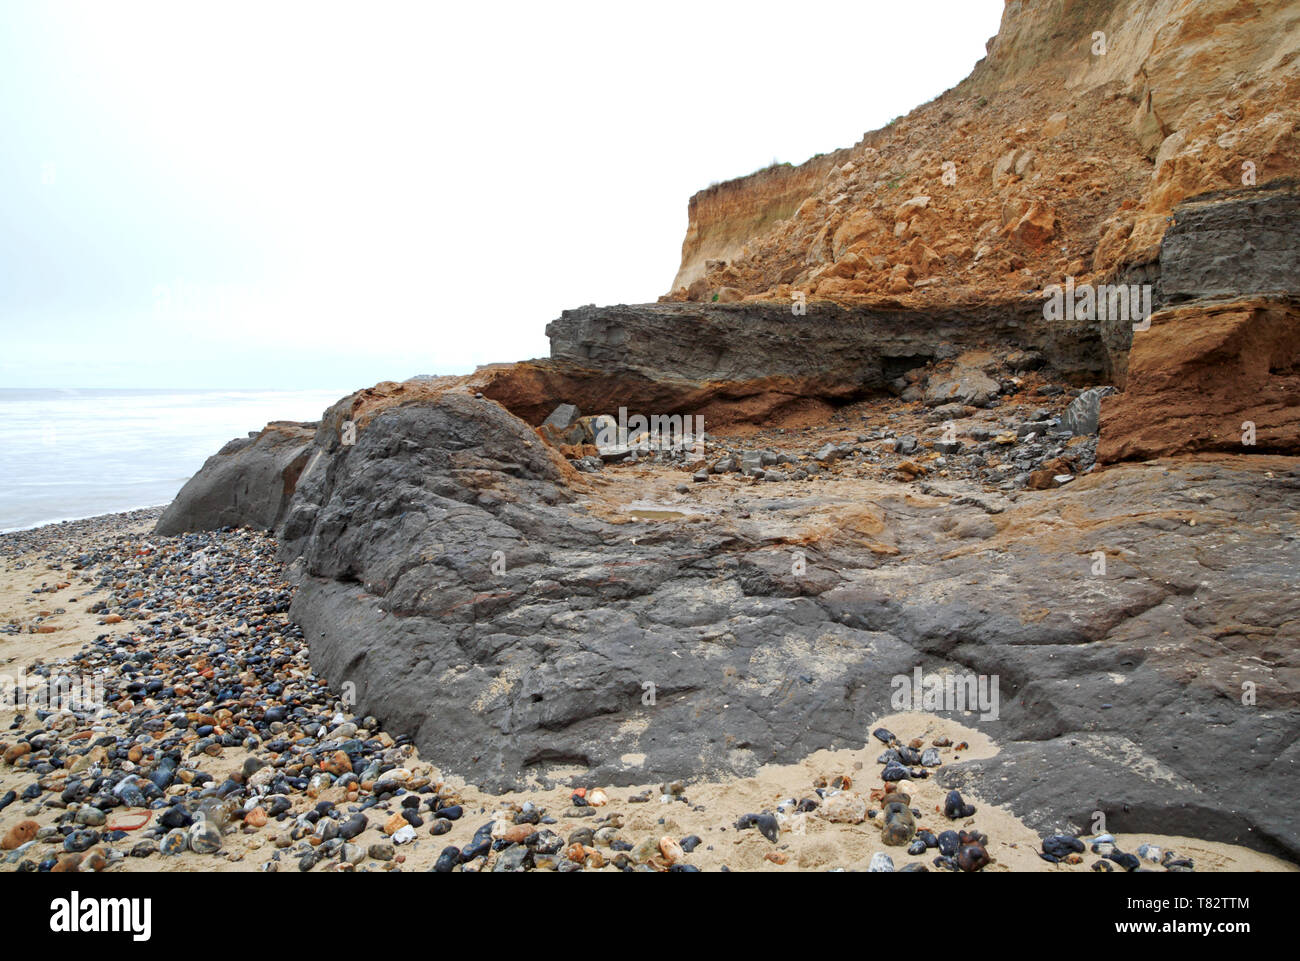 Coast erosion with soft cliffs of glacial sands and gravels and a clay base at Happisburgh, Norfolk, England, United Kingdom, Europe. - Stock Image